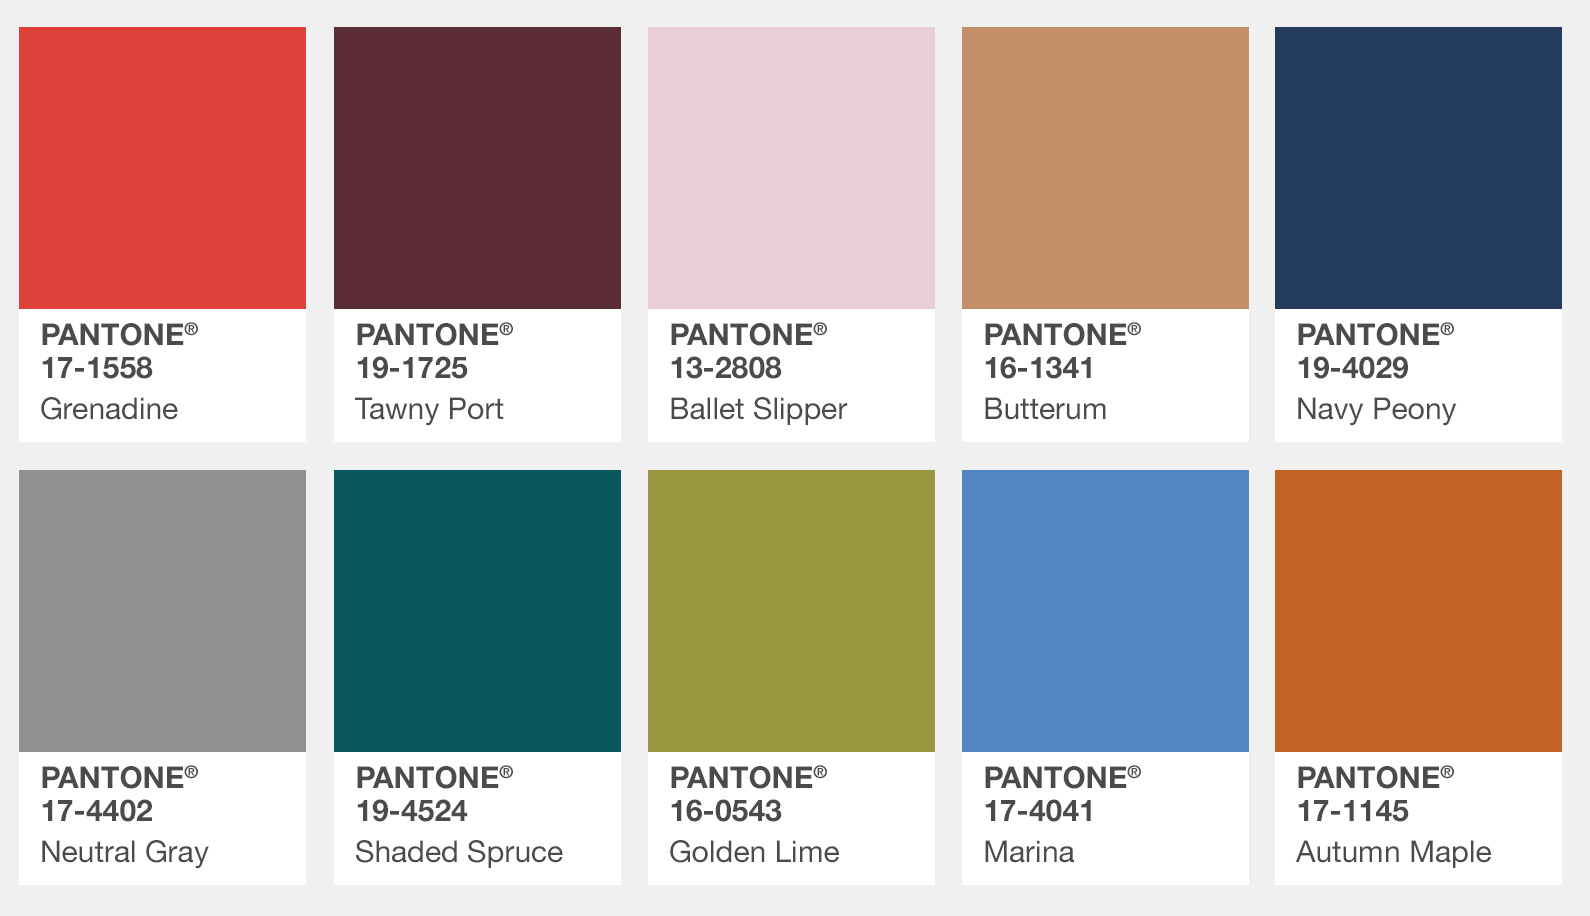 2017 Pantone Fall Fashion Colors, Pantone Color Palette Swatches Fall 2017, New York